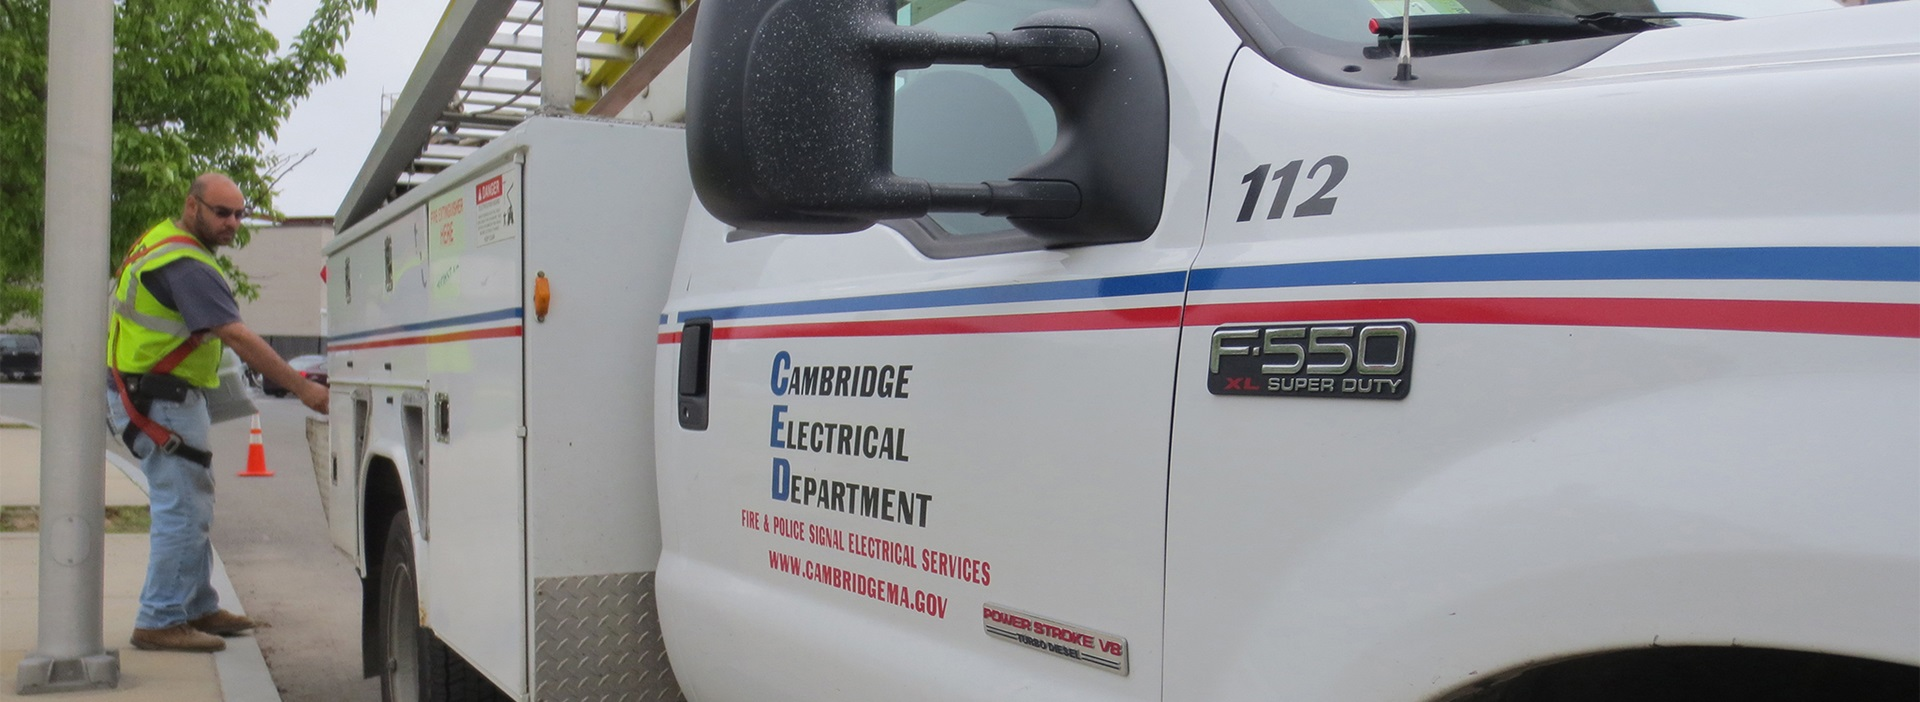 Photo of a Cambridge Electrical Department truck